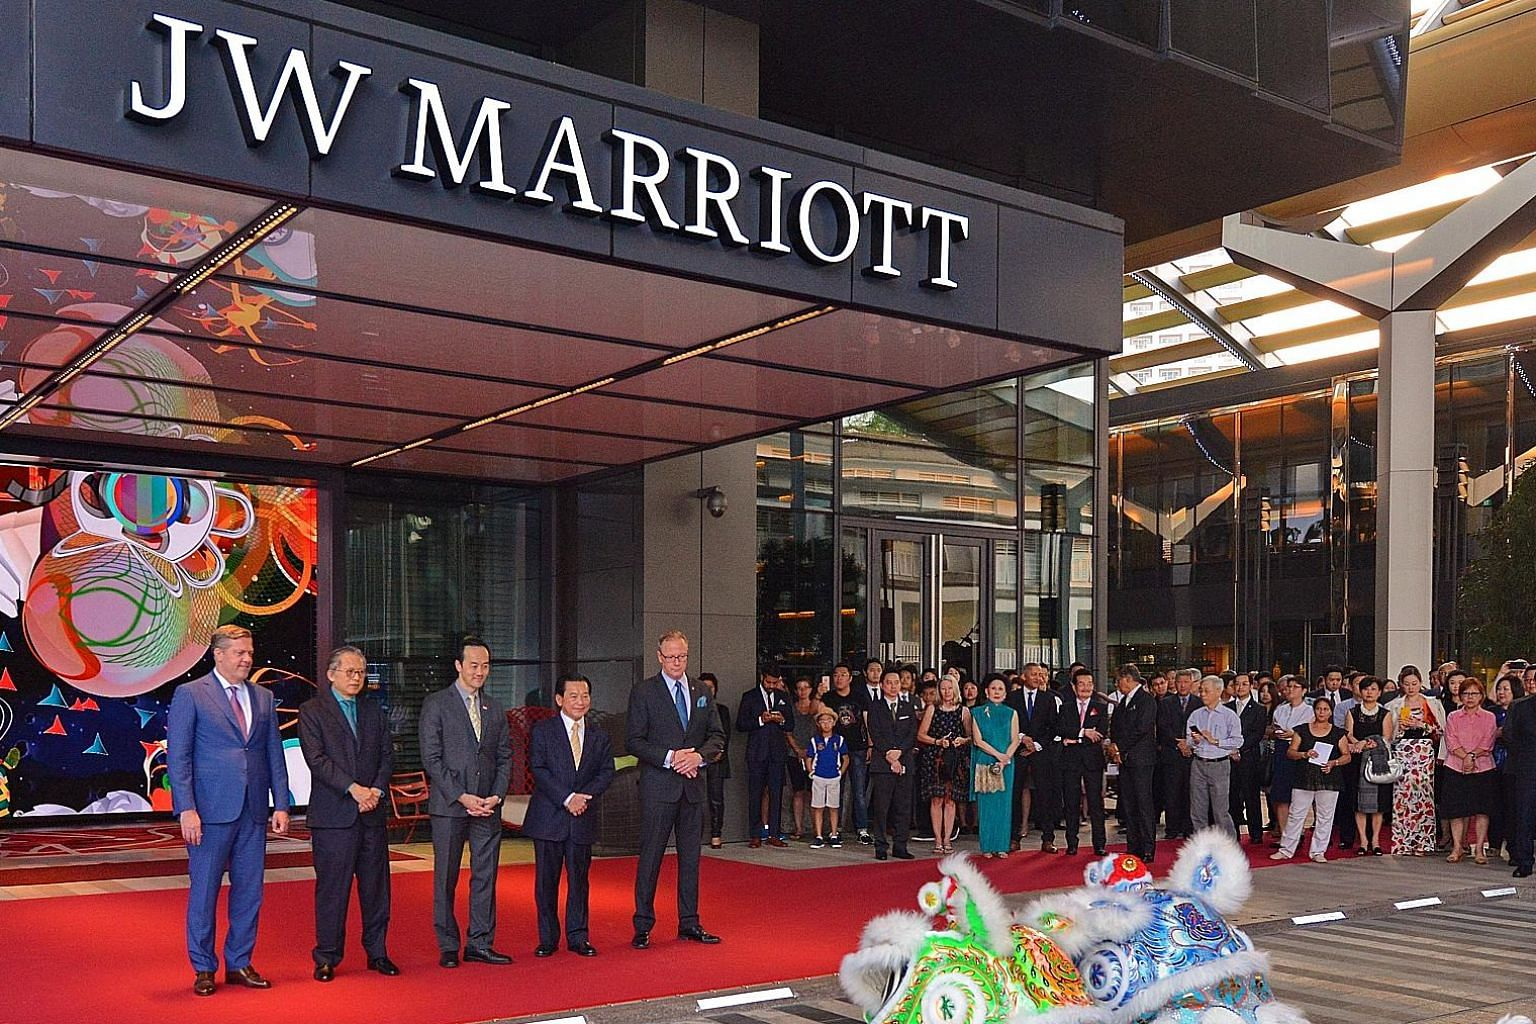 Minister of State for Trade and Industry Koh Poh Koon (third from left) says an Industry Transformation Map for the hotel sector was launched last year to tackle challenges such as manpower constraints. JW Marriott is tapping technology to track and